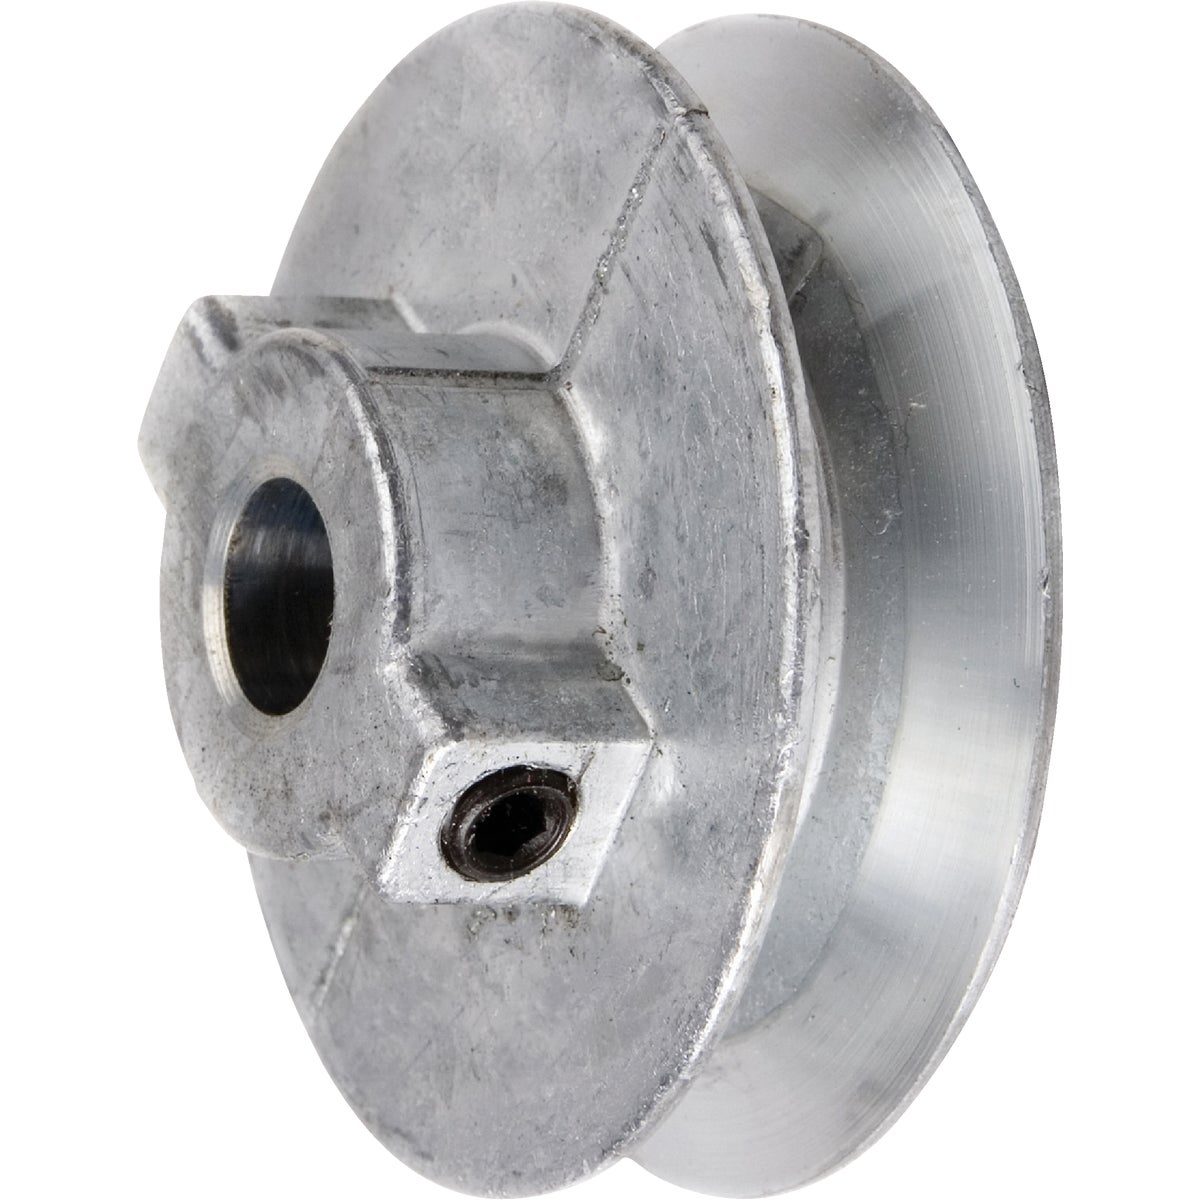 1-3/4X1/2 PULLEY - 175A5 by Chicago Die Casting